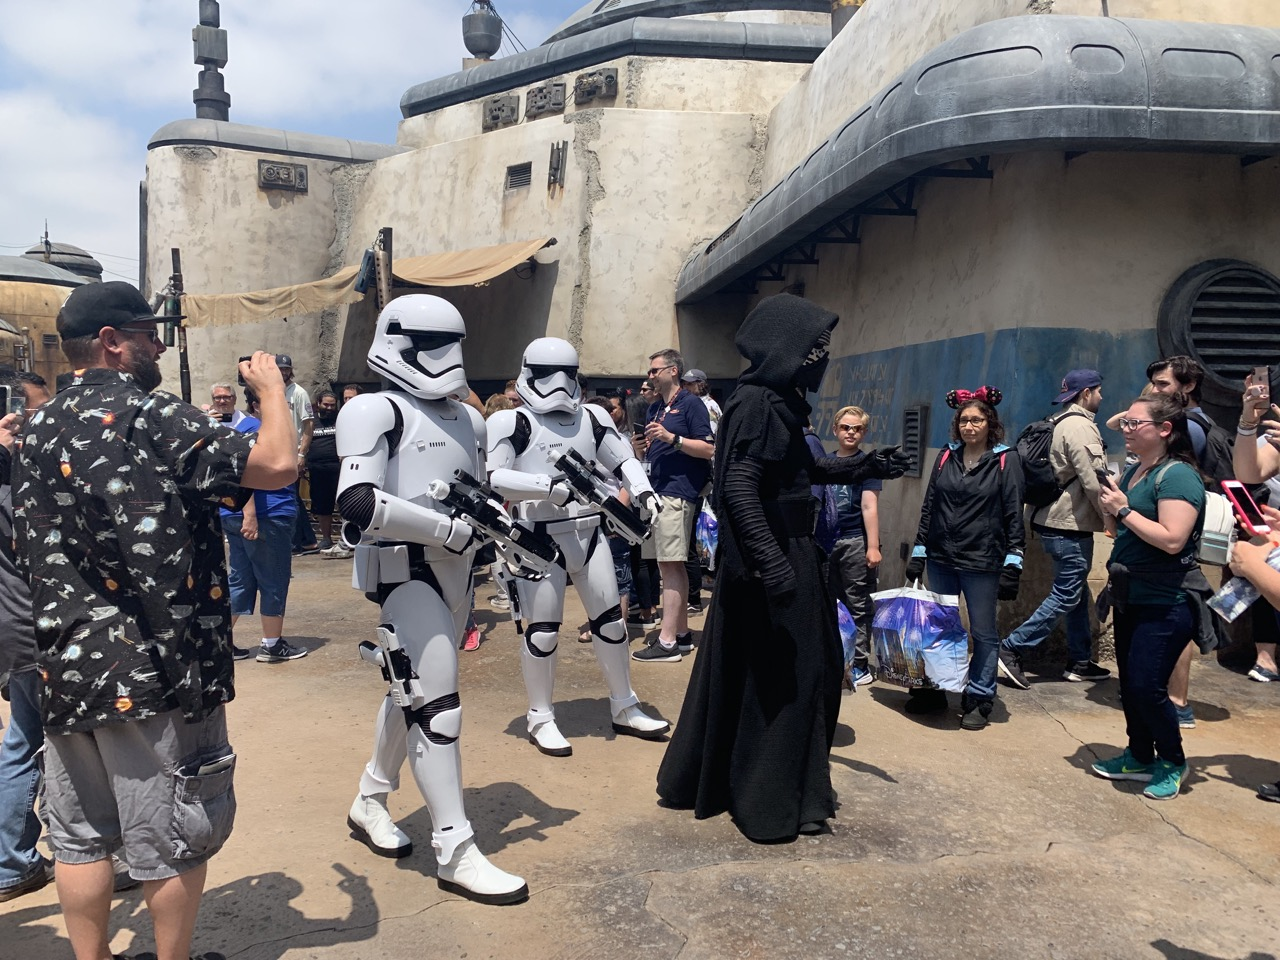 star wars land disneyland galaxys edge plan touring strategy 8.jpeg